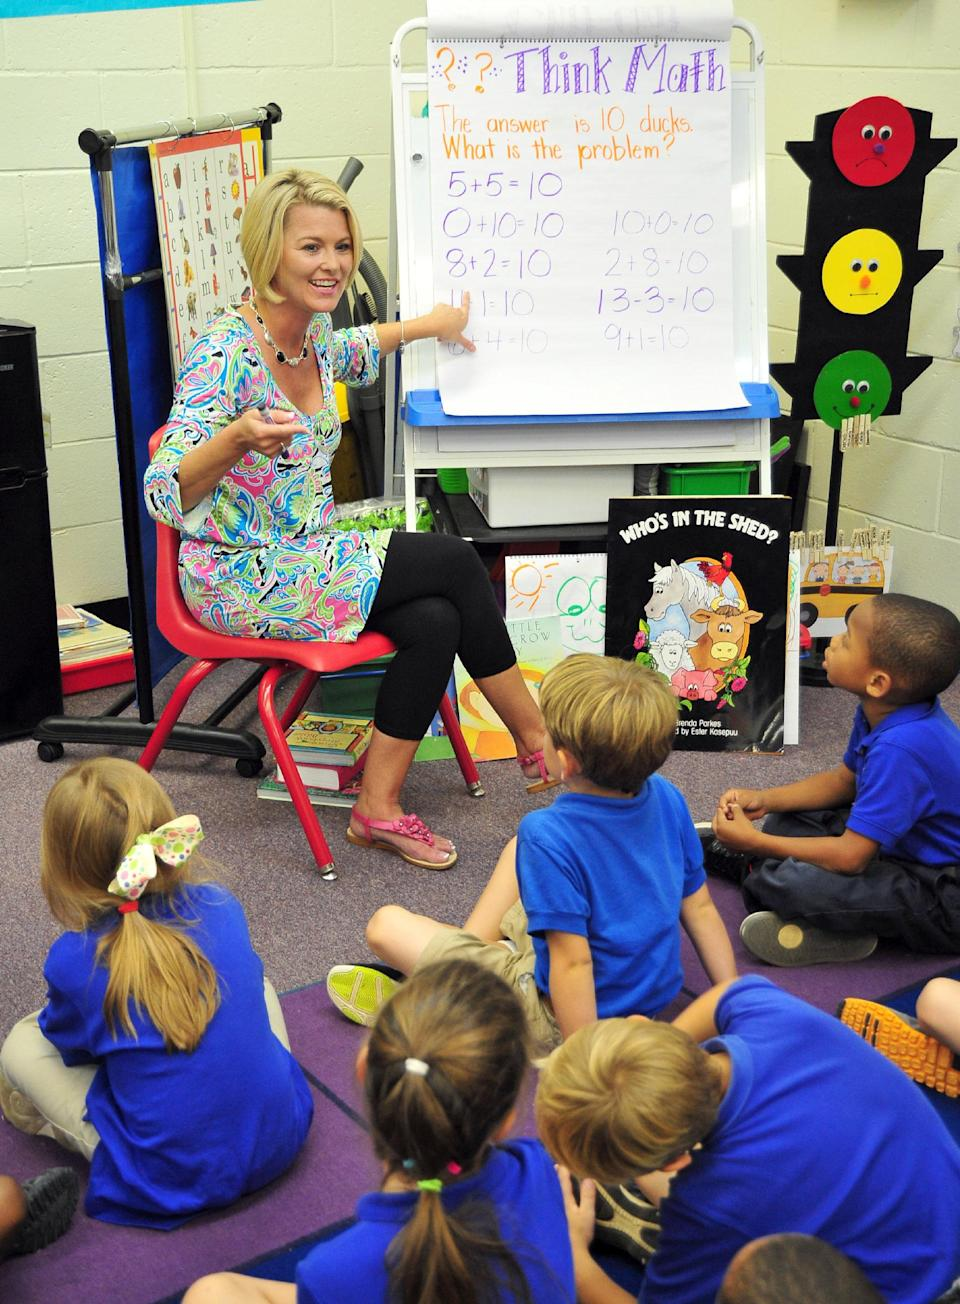 Deanna Jump, a first-grade teacher at Central Fellowship Christian Academy in Macon, Ga., instructs her students in math on Wednesday, September 12, 2012.  Jump, the top seller on the website teacherspayteachers.com, has been invited to multiple school systems across the country to share her teaching methods. (AP Photo/Todd Stone)